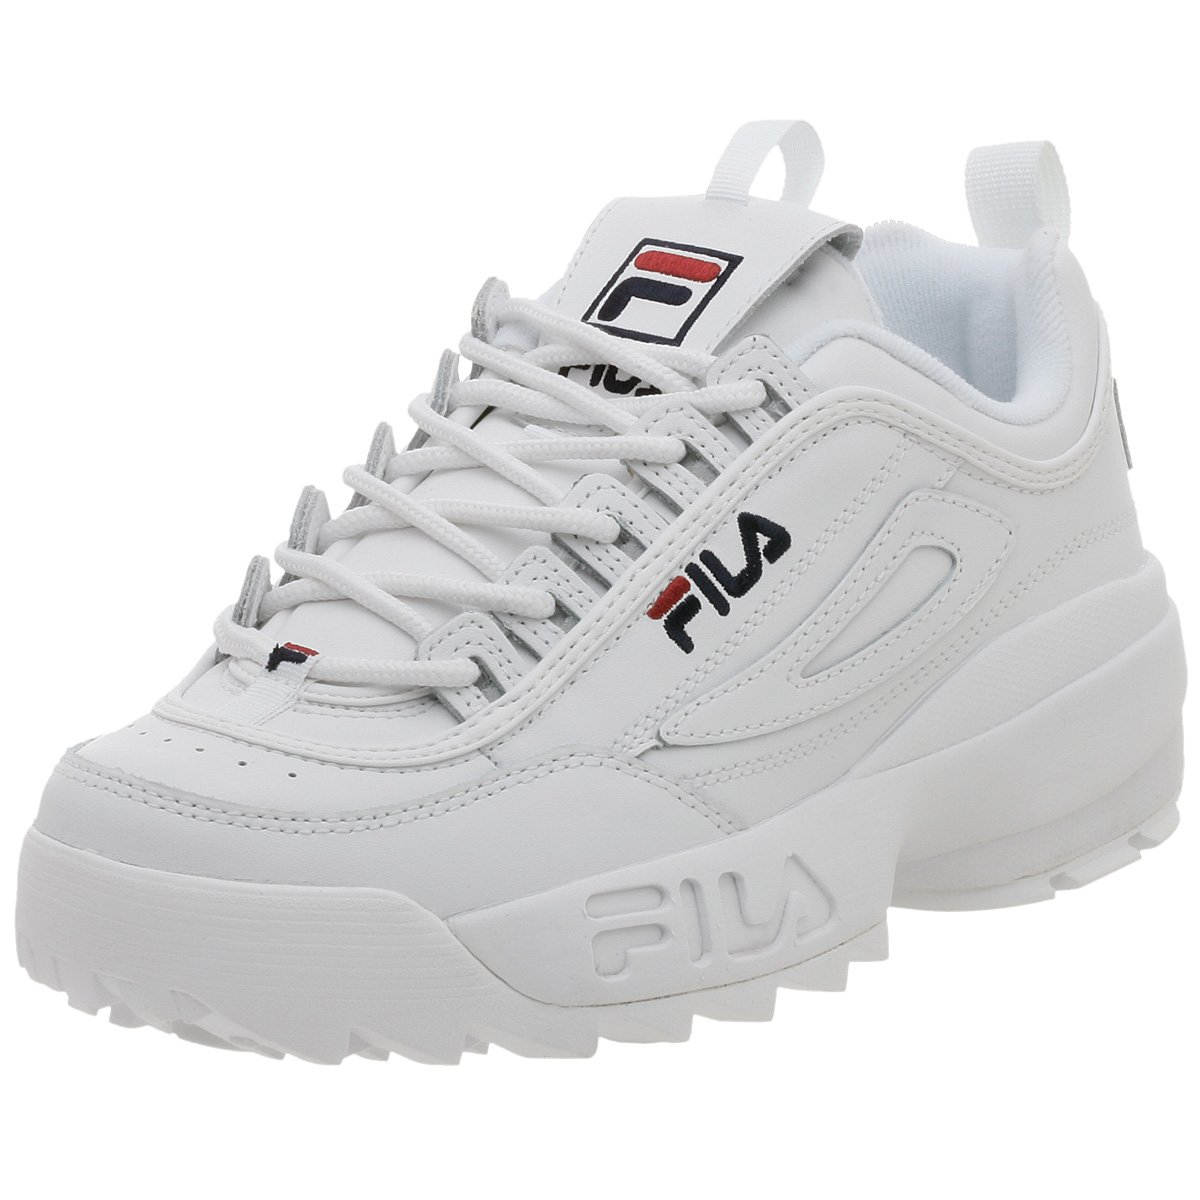 fila shoes for men disruptor nerf gun